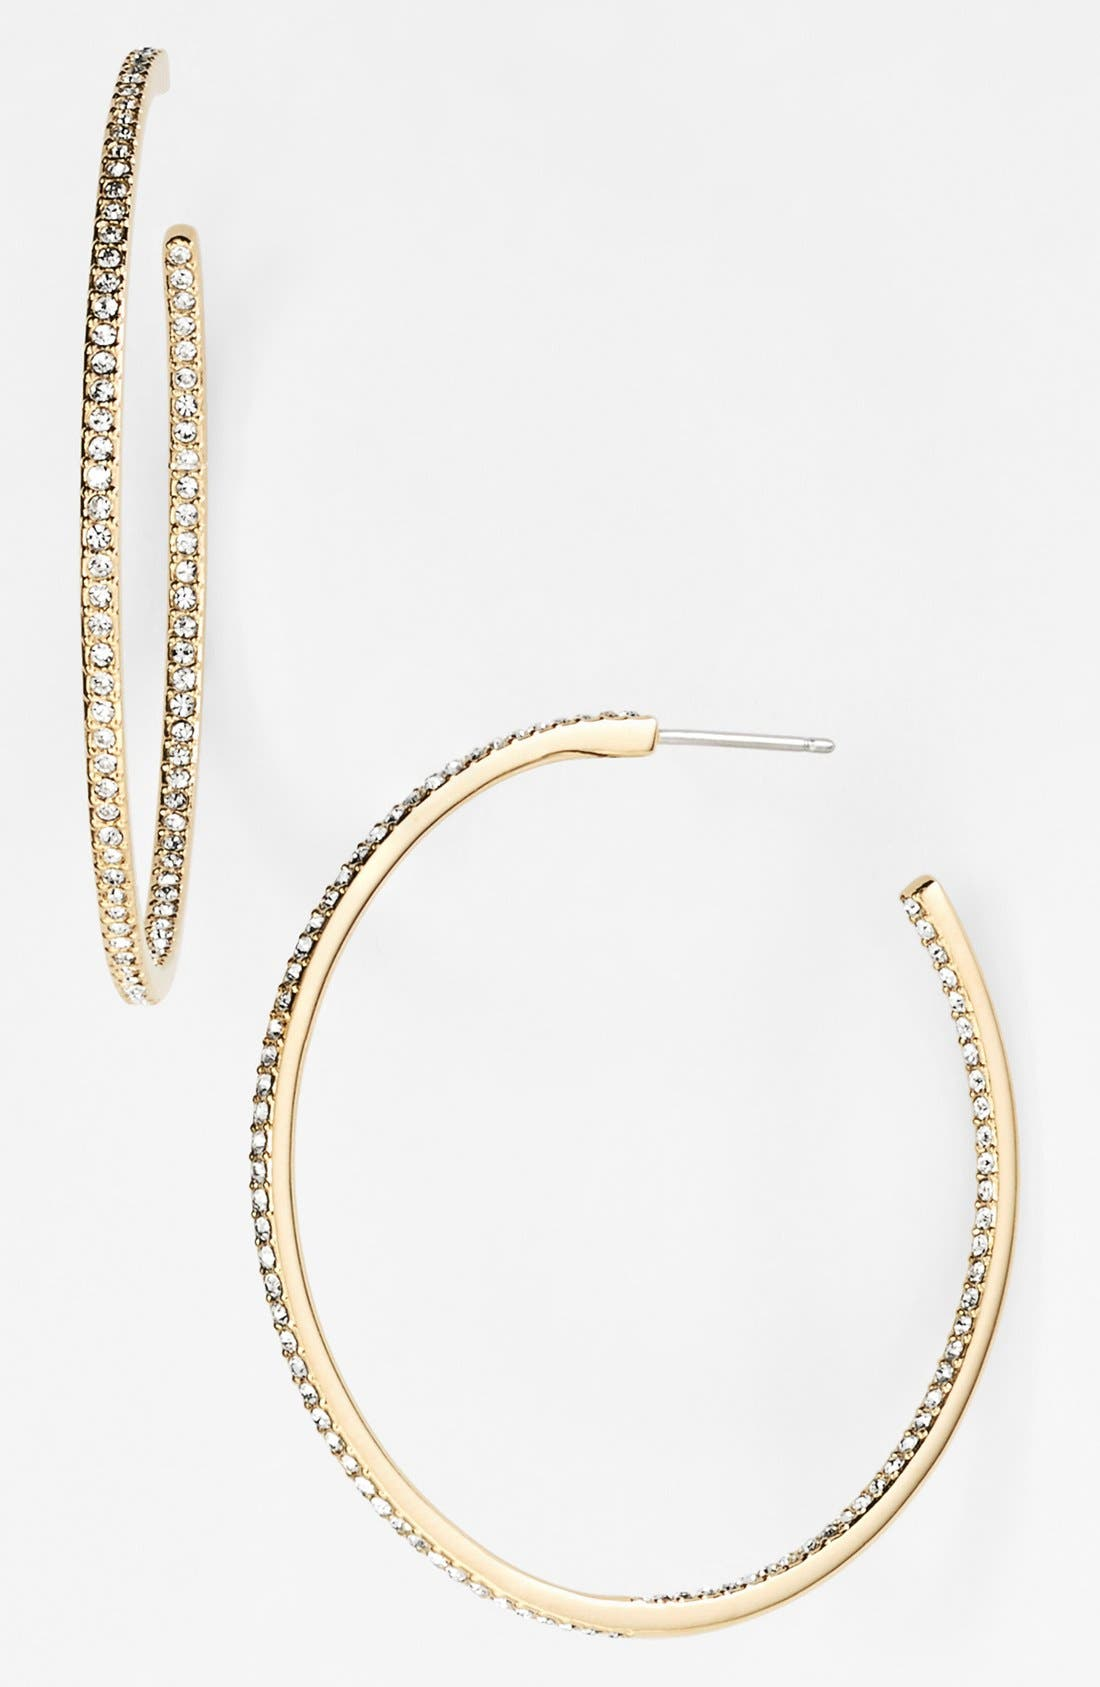 Main Image - Nadri Medium Inside Out Hoop Earrings (Nordstrom Exclusive)